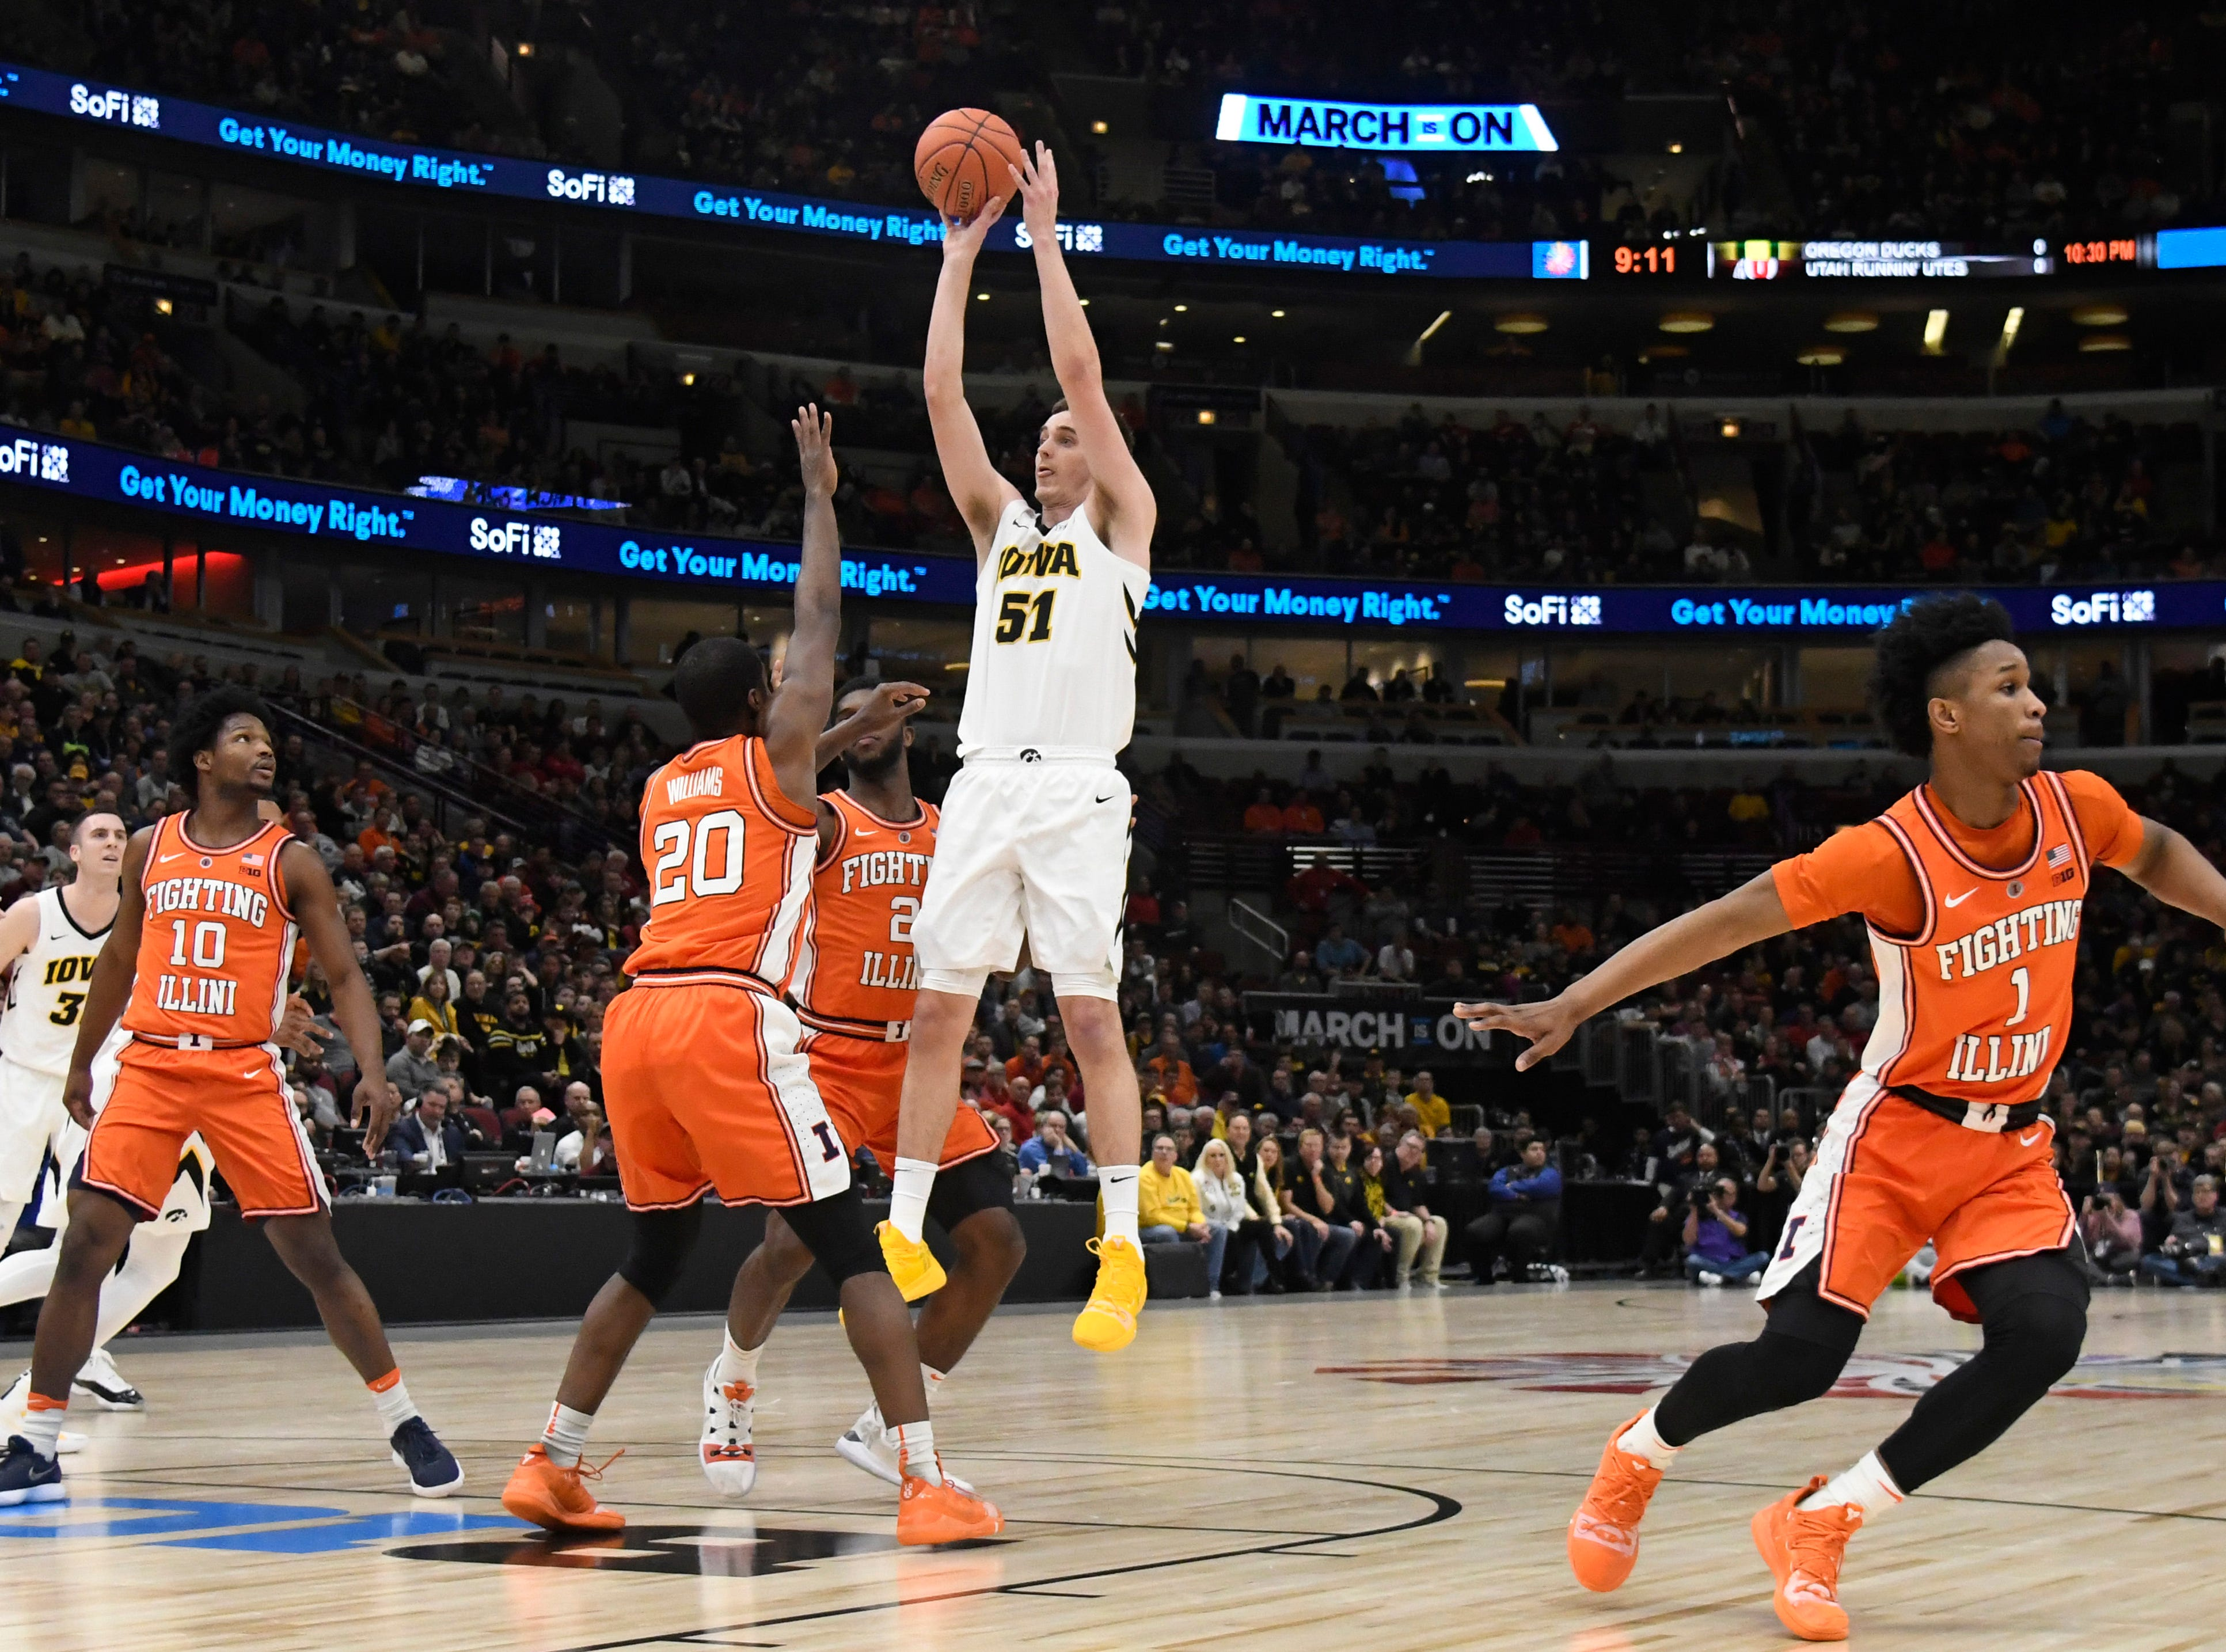 Mar 14, 2019; Chicago, IL, USA; Iowa Hawkeyes forward Nicholas Baer (51) shoots over Illinois Fighting Illini guard Da'Monte Williams (20) during the first half in the Big Ten conference tournament at United Center. Mandatory Credit: David Banks-USA TODAY Sports